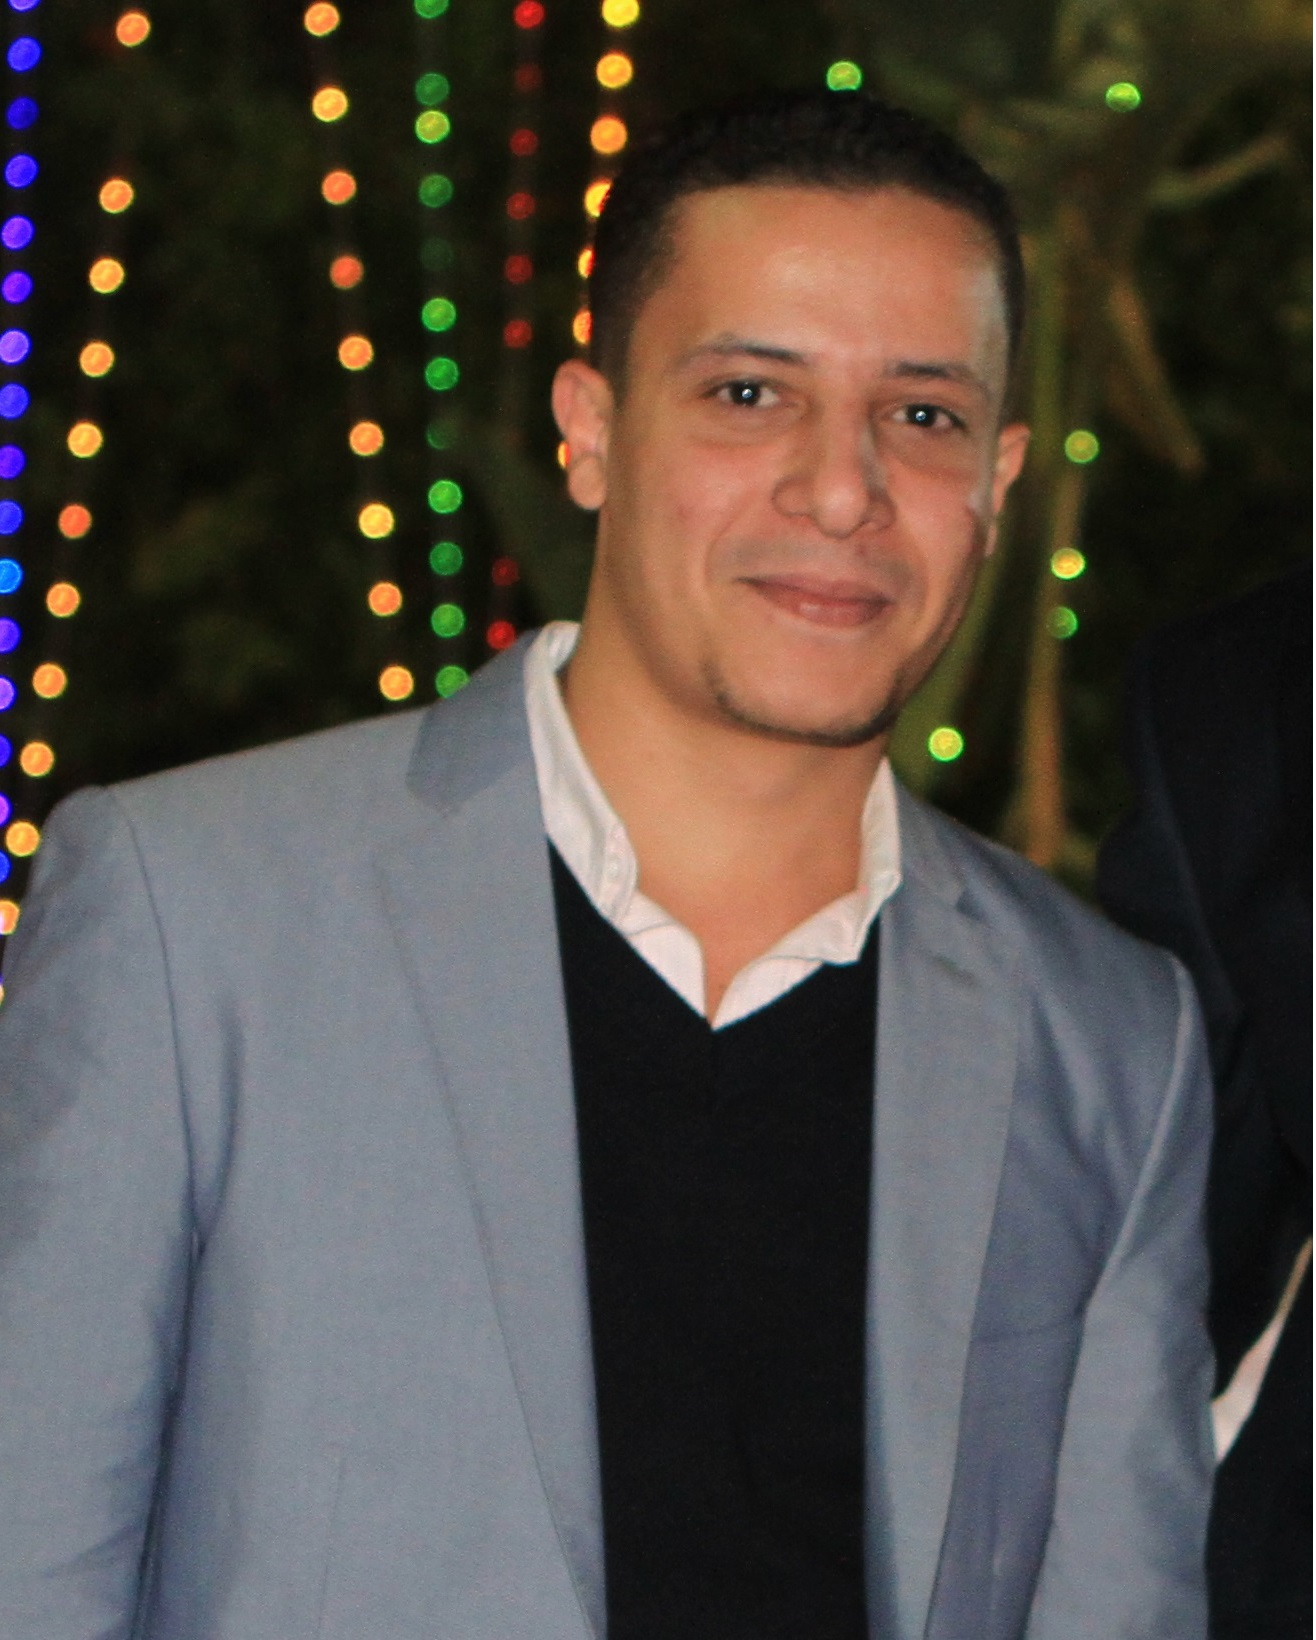 Mr. Mohamed Gamal Kandeel